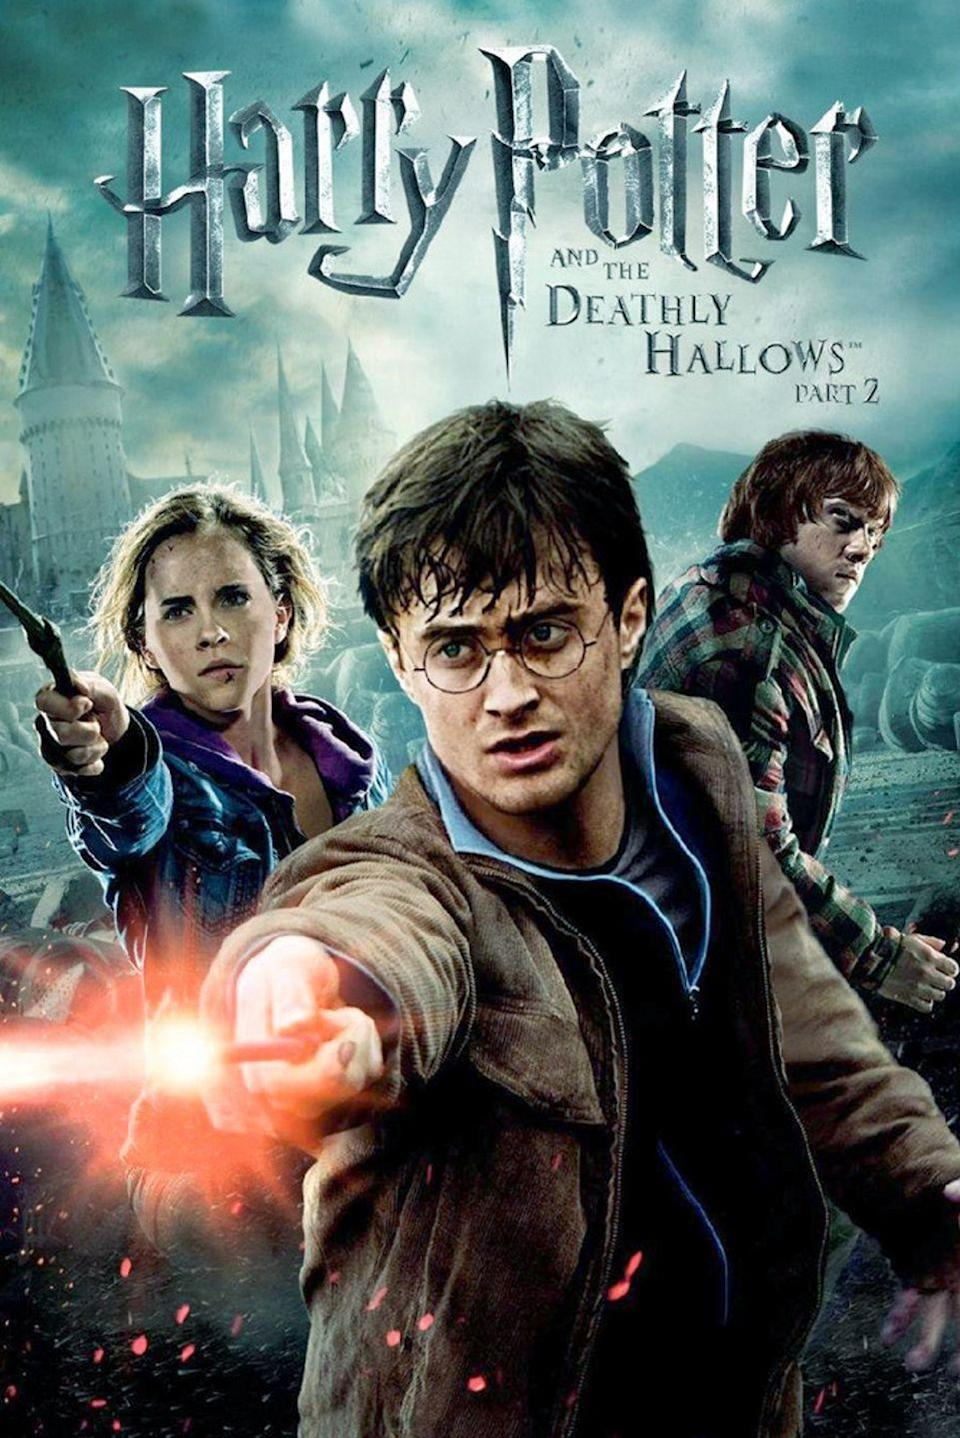 "<p>In the final installment, it is the epic battle between good and evil. The Wizarding World is in an all-out war taking place at Hogwarts. It is up to Harry to defeat Voldemort and save the world.</p><p><a class=""link rapid-noclick-resp"" href=""https://www.amazon.com/gp/video/detail/B00BR6NPRG/ref=atv_dp_b00_det_c_UTPsmN_1_1?tag=syn-yahoo-20&ascsubtag=%5Bartid%7C10055.g.33625559%5Bsrc%7Cyahoo-us"" rel=""nofollow noopener"" target=""_blank"" data-ylk=""slk:WATCH NOW"">WATCH NOW</a></p>"